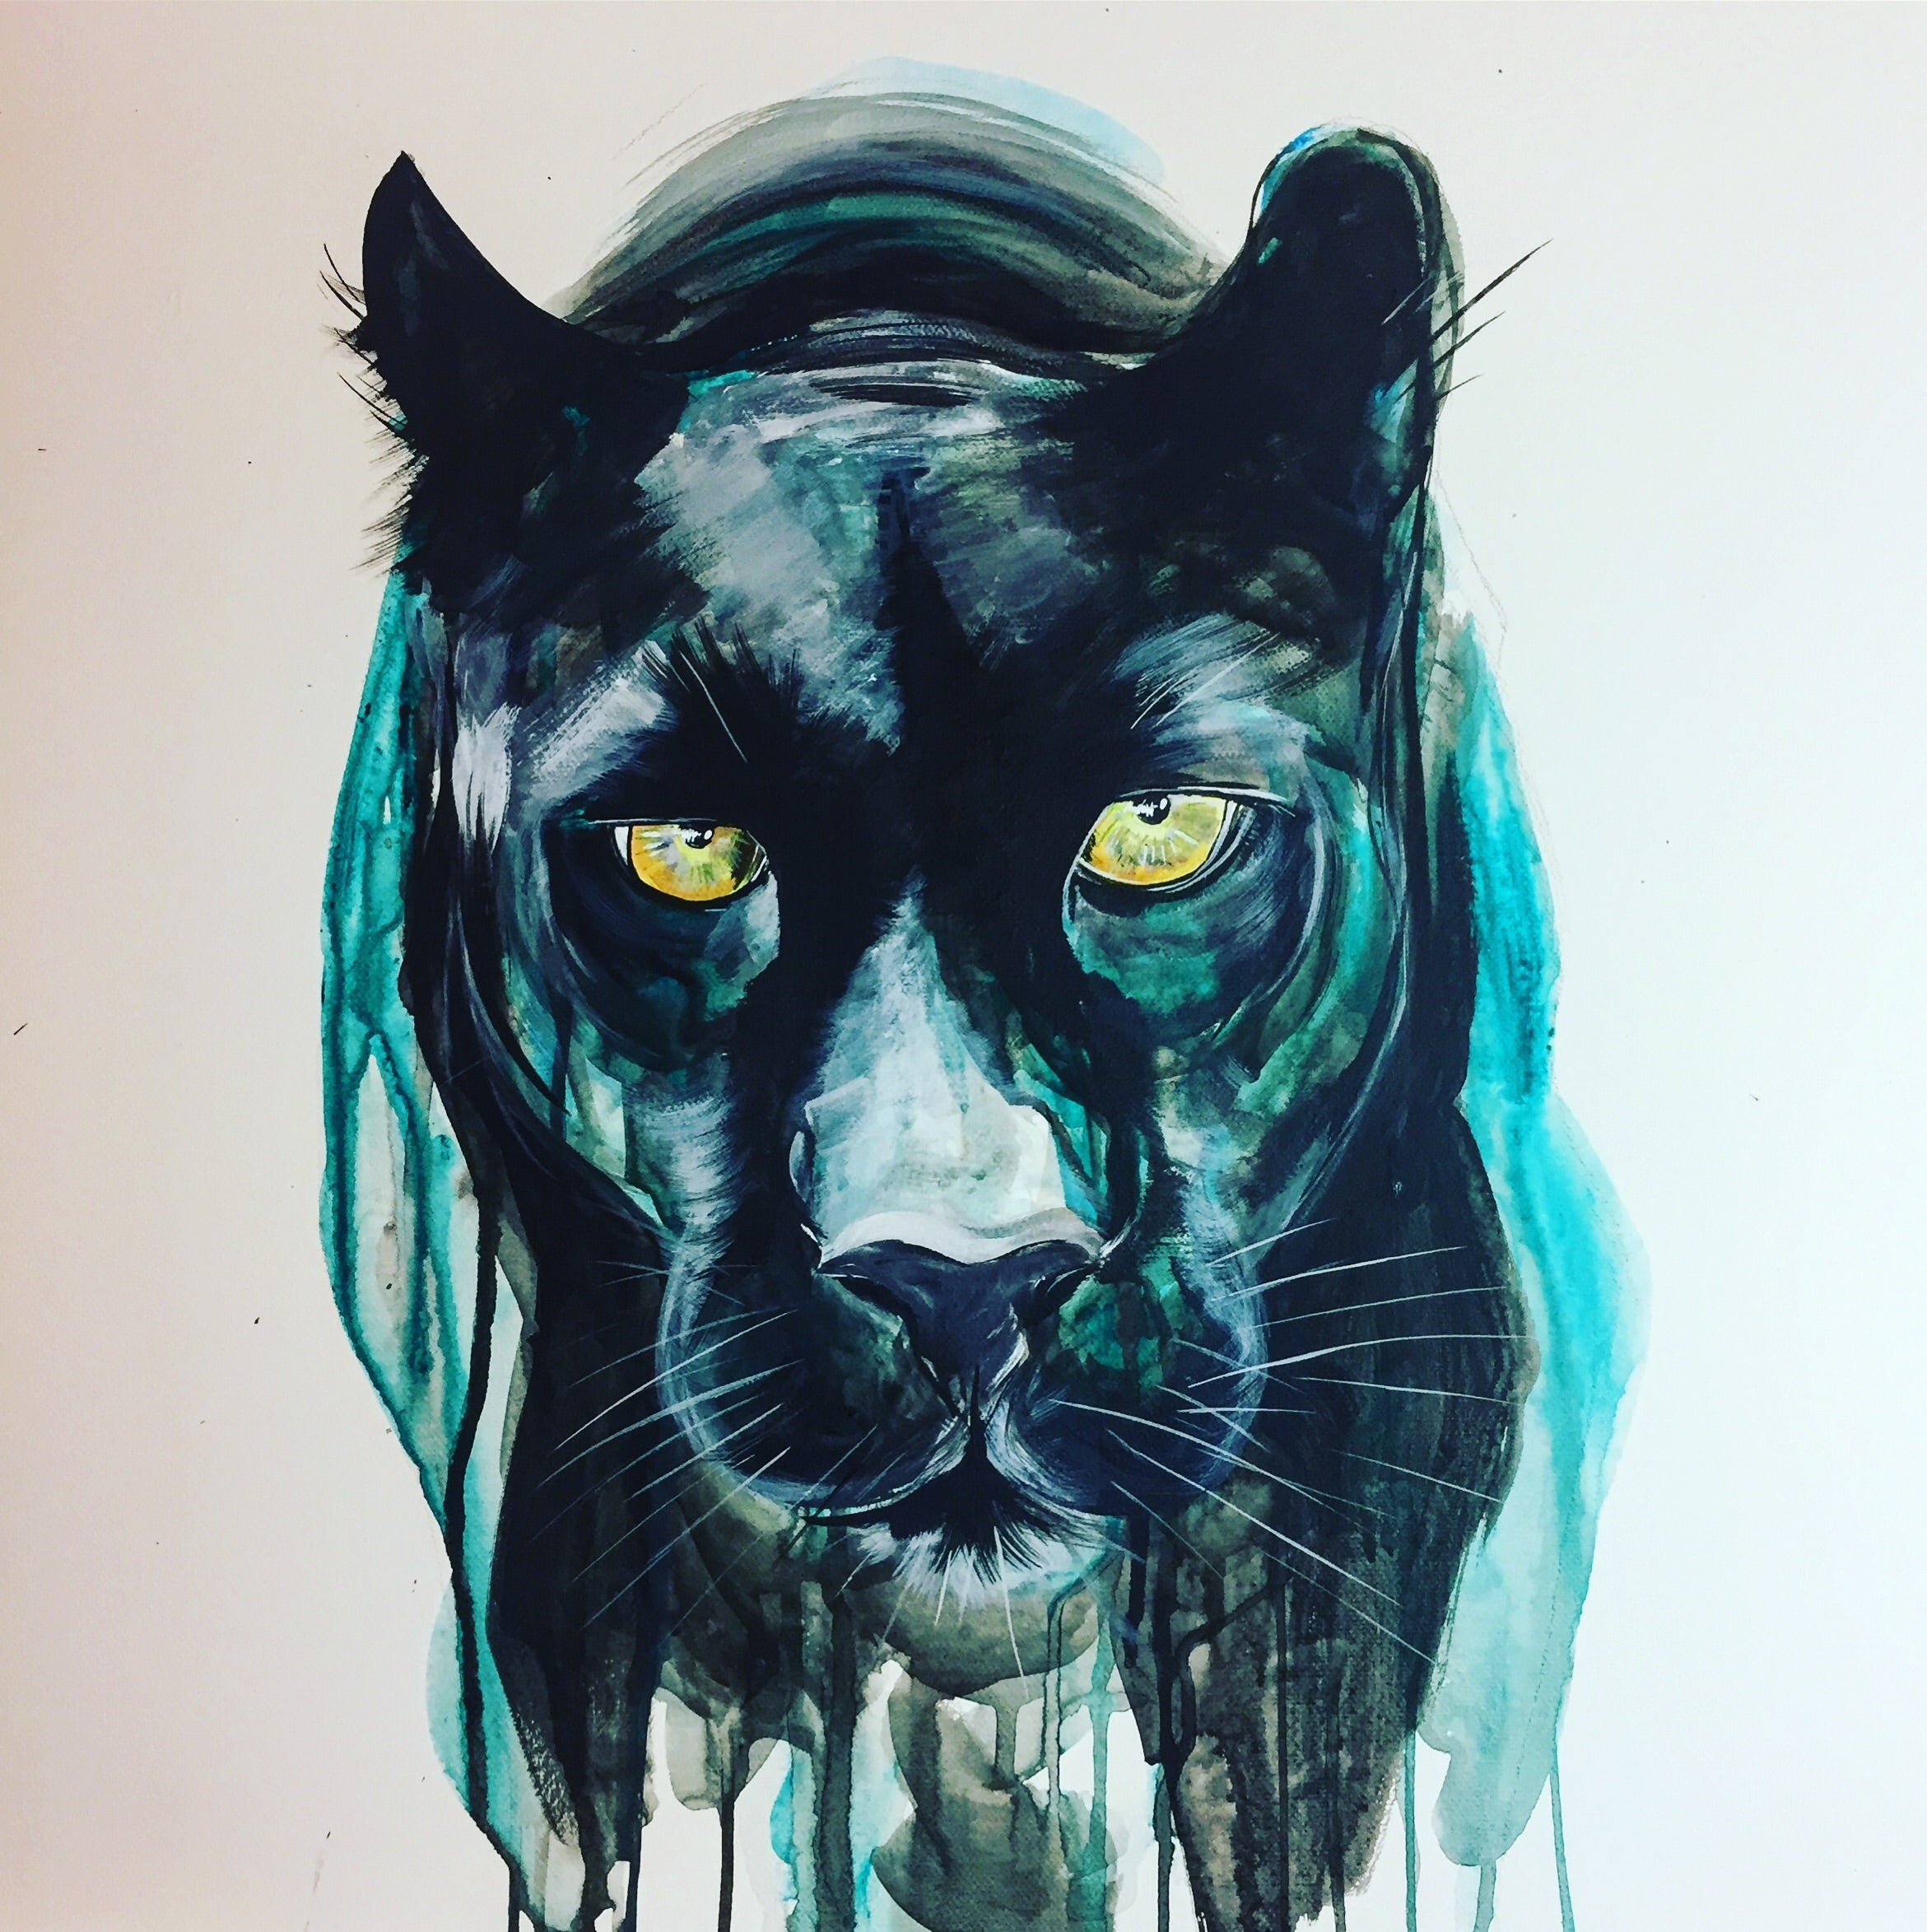 DAY11 #30minuteartchallenge PANTHER